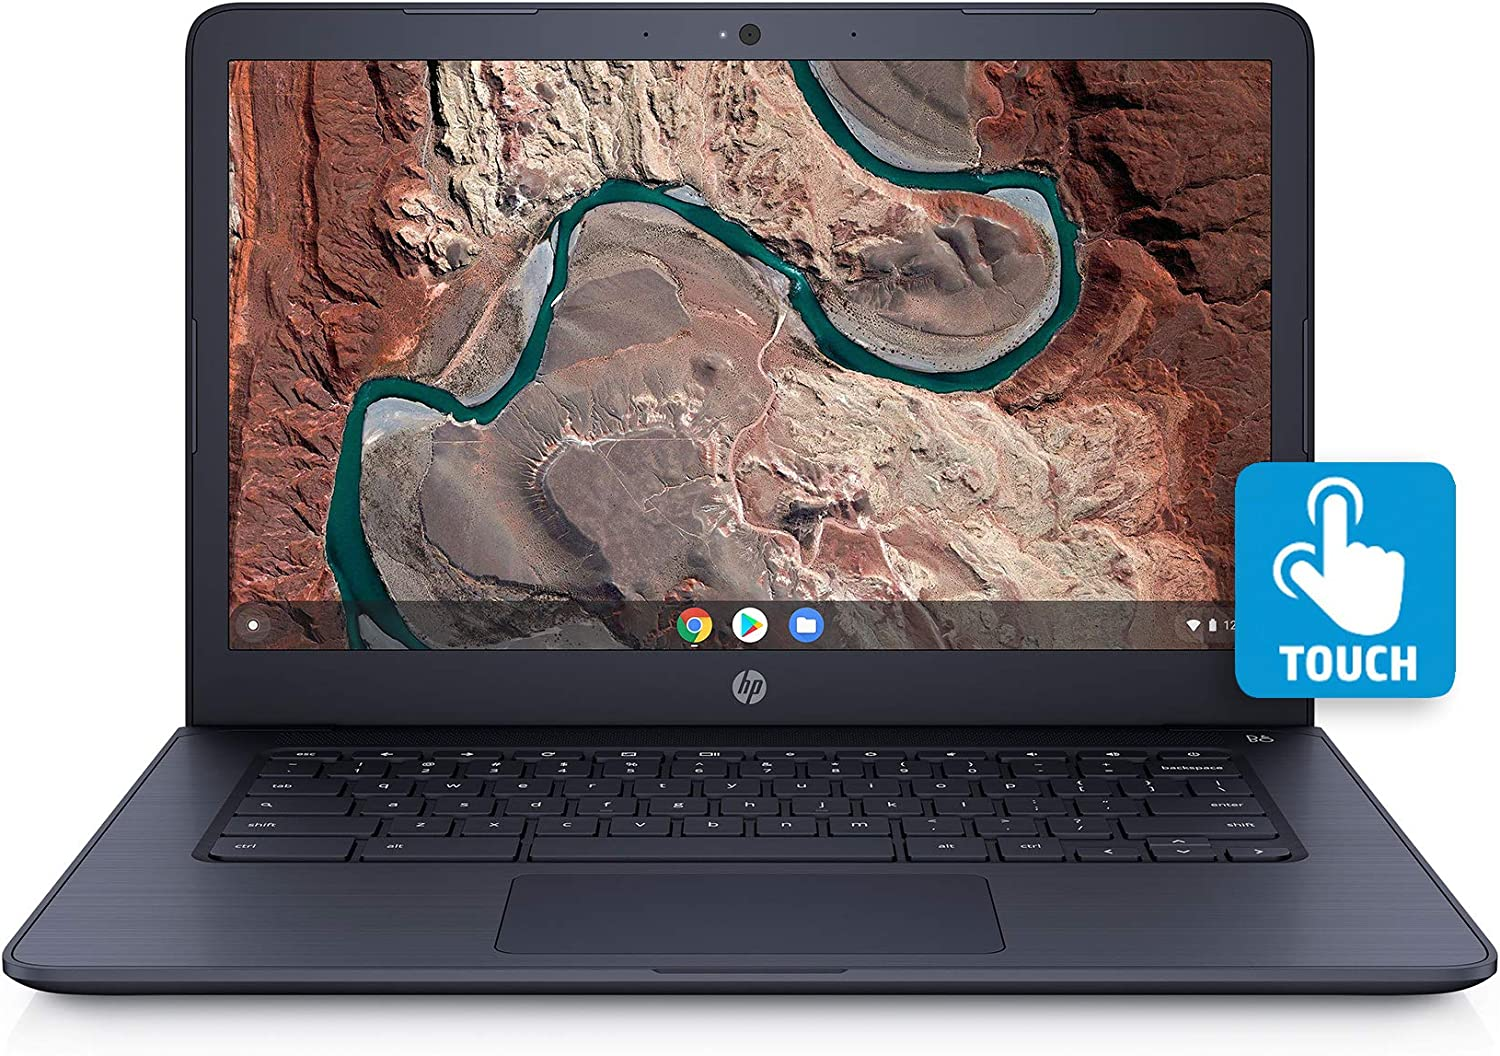 HP 14inch Full HD Touchscreen Chromebook AMD Dual-Core A4-9120 Processor, 4GB DDR4 Memory, 32GB eMMC Storage, AMD Radeon Graphics,Audio by B&O, Chrome OS Ink Blue(Renewed)